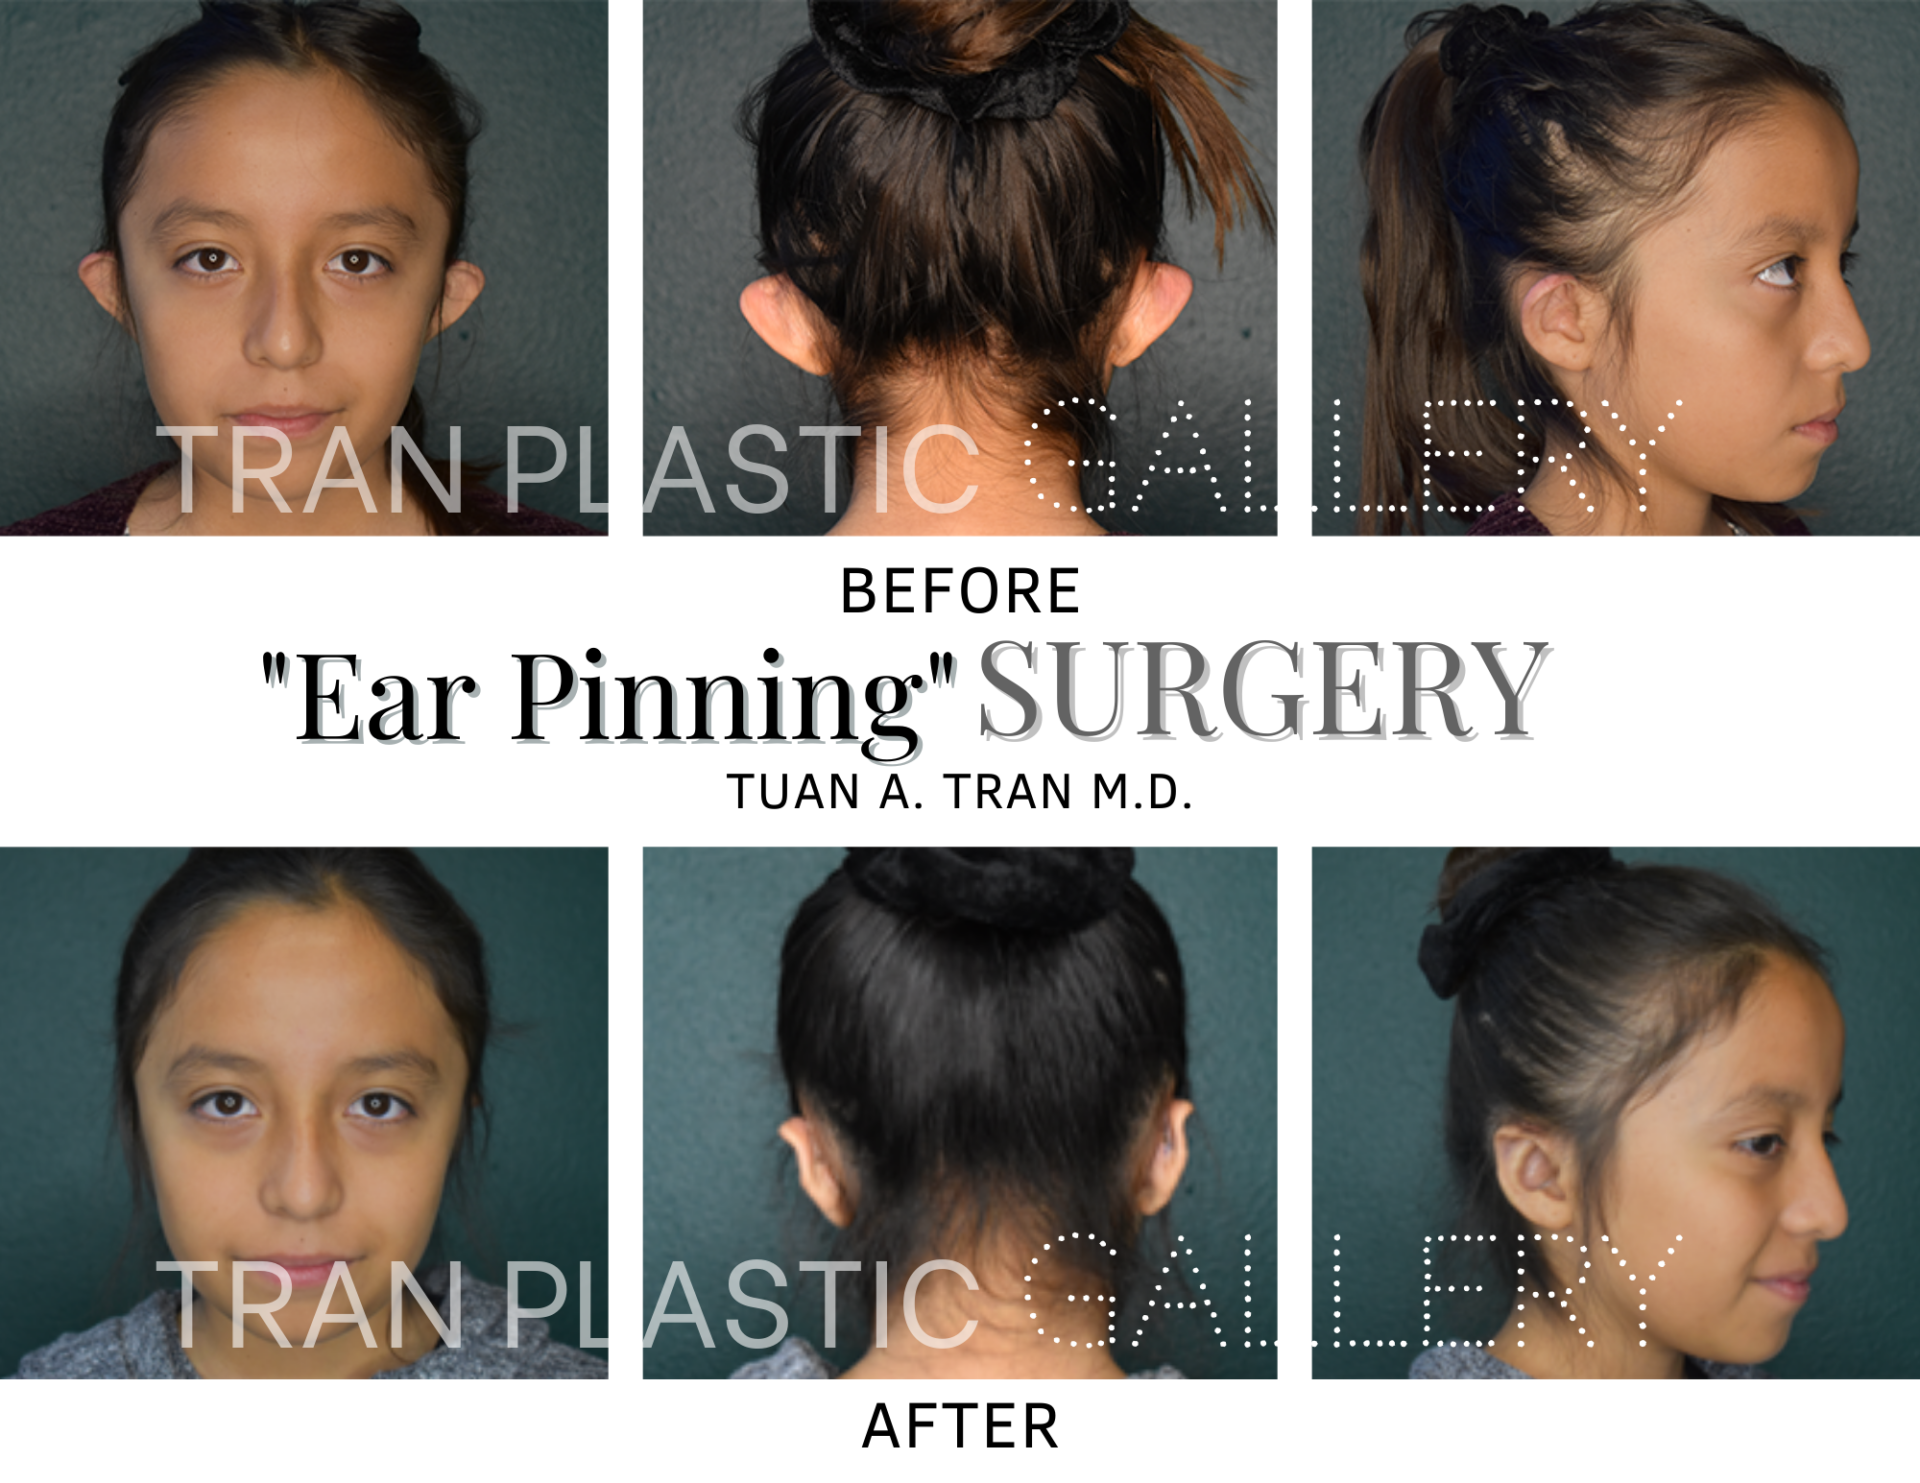 Tran Plastic Surgery - Ear Pinning